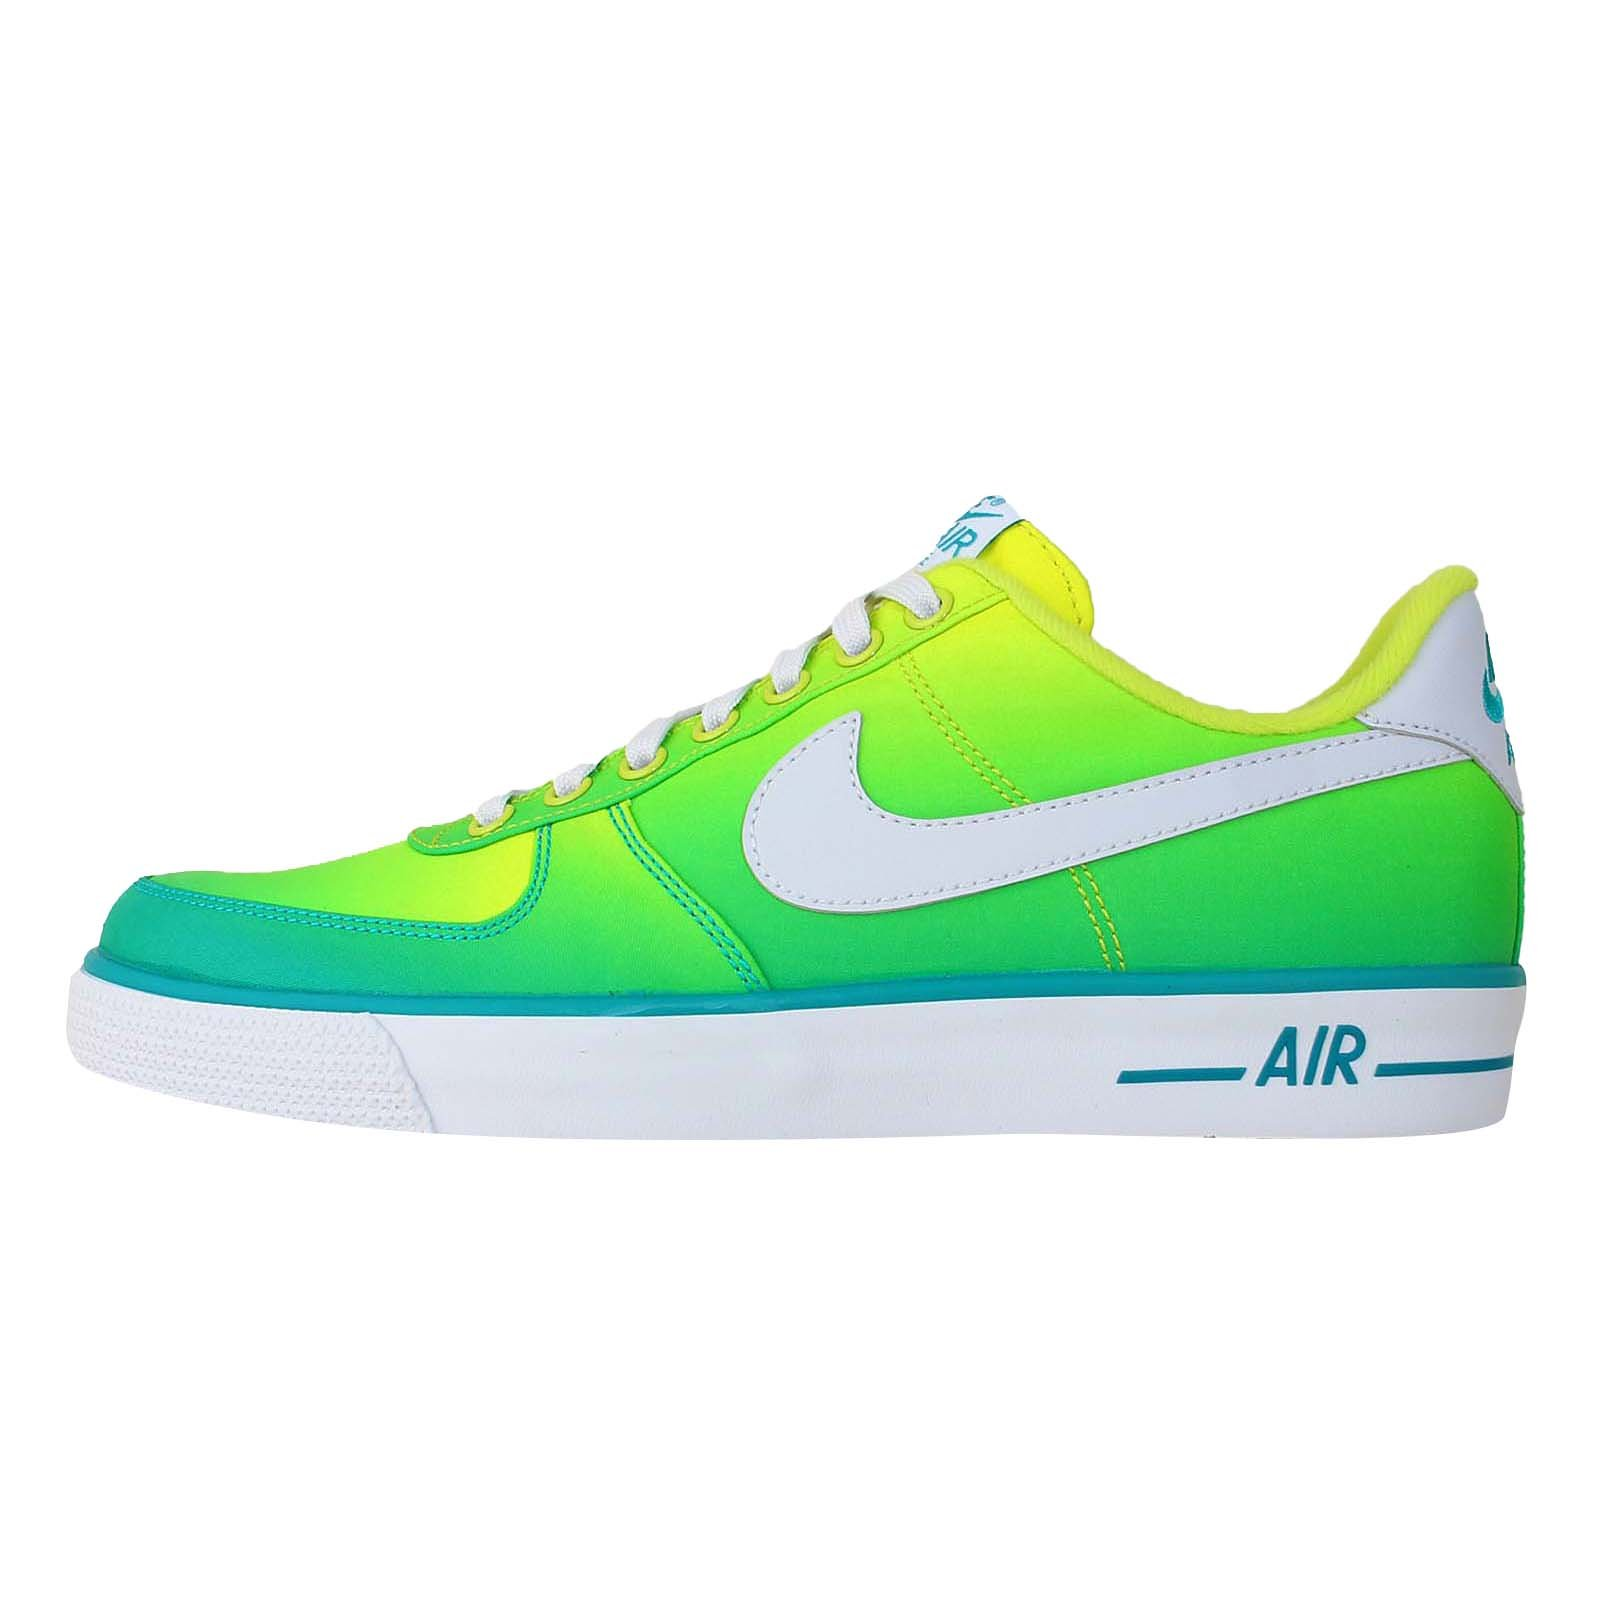 Nike Air Force 1 Ac Br Qs Men's Basketball Shoe 694861 300 Color: Turbo Green/White